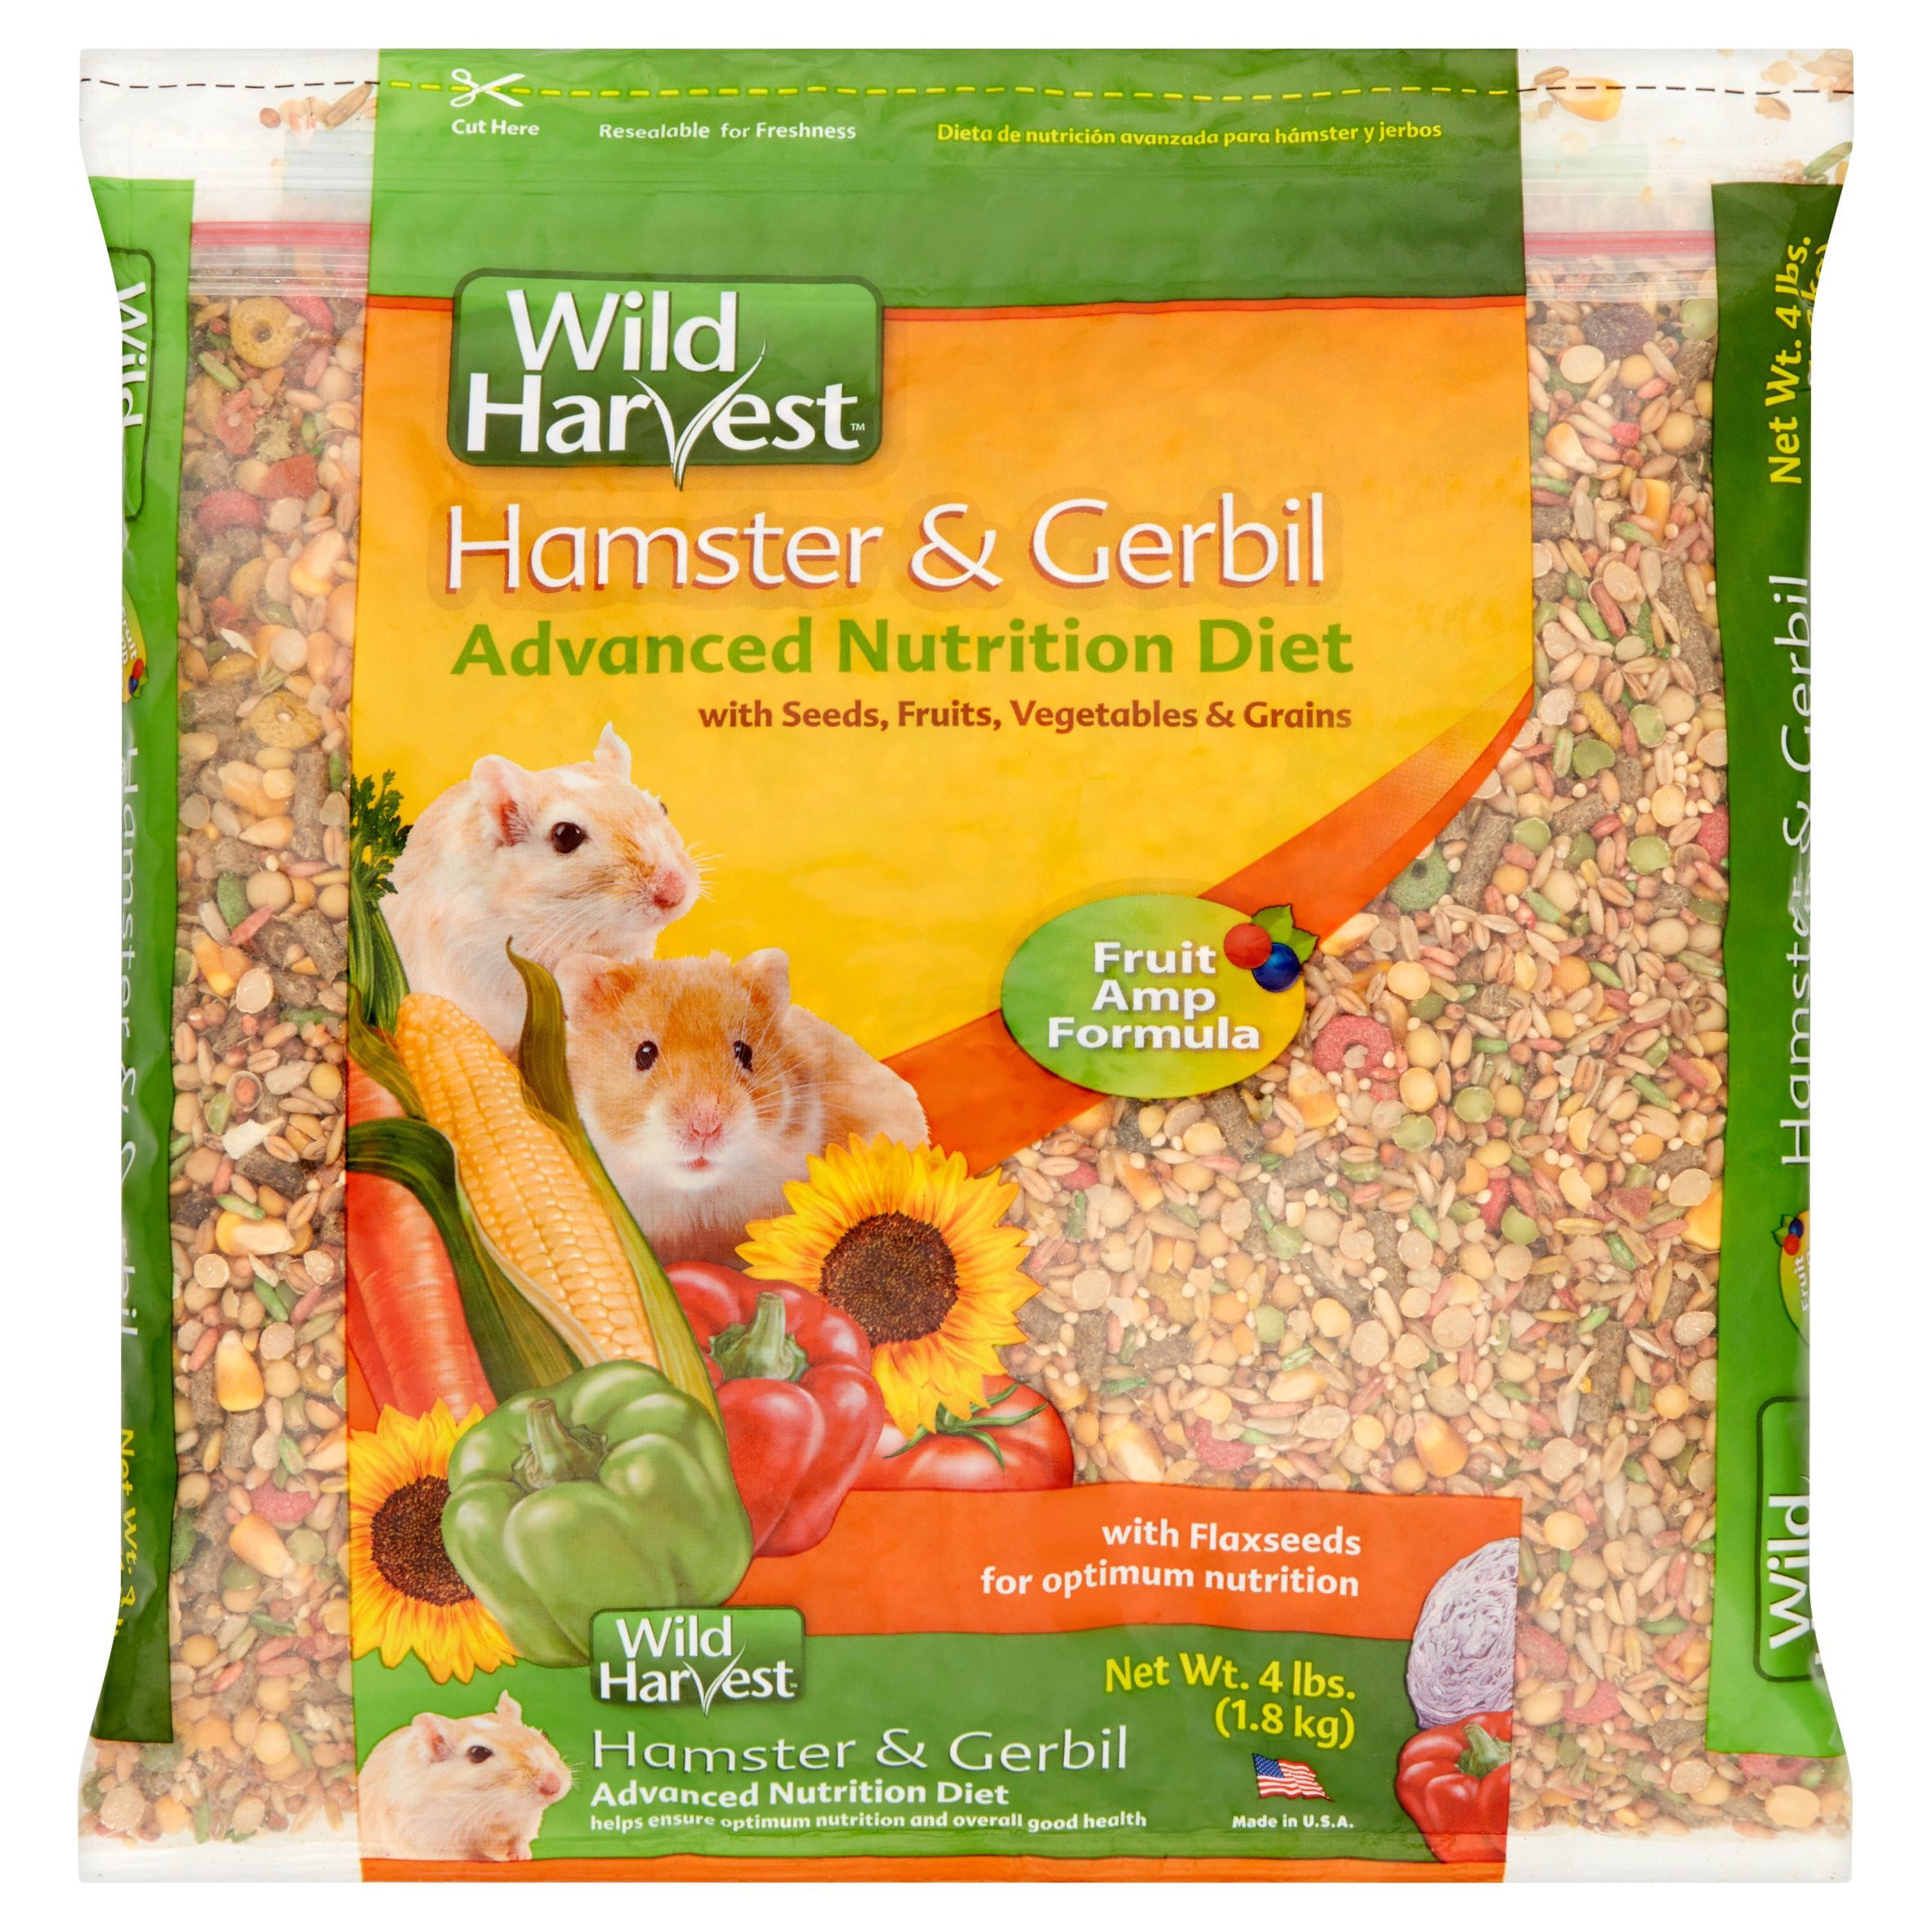 Wild Harvest Hamster and Gerbil Advanced Nutrition Diet, 4 lbs. by Spectrum Brands